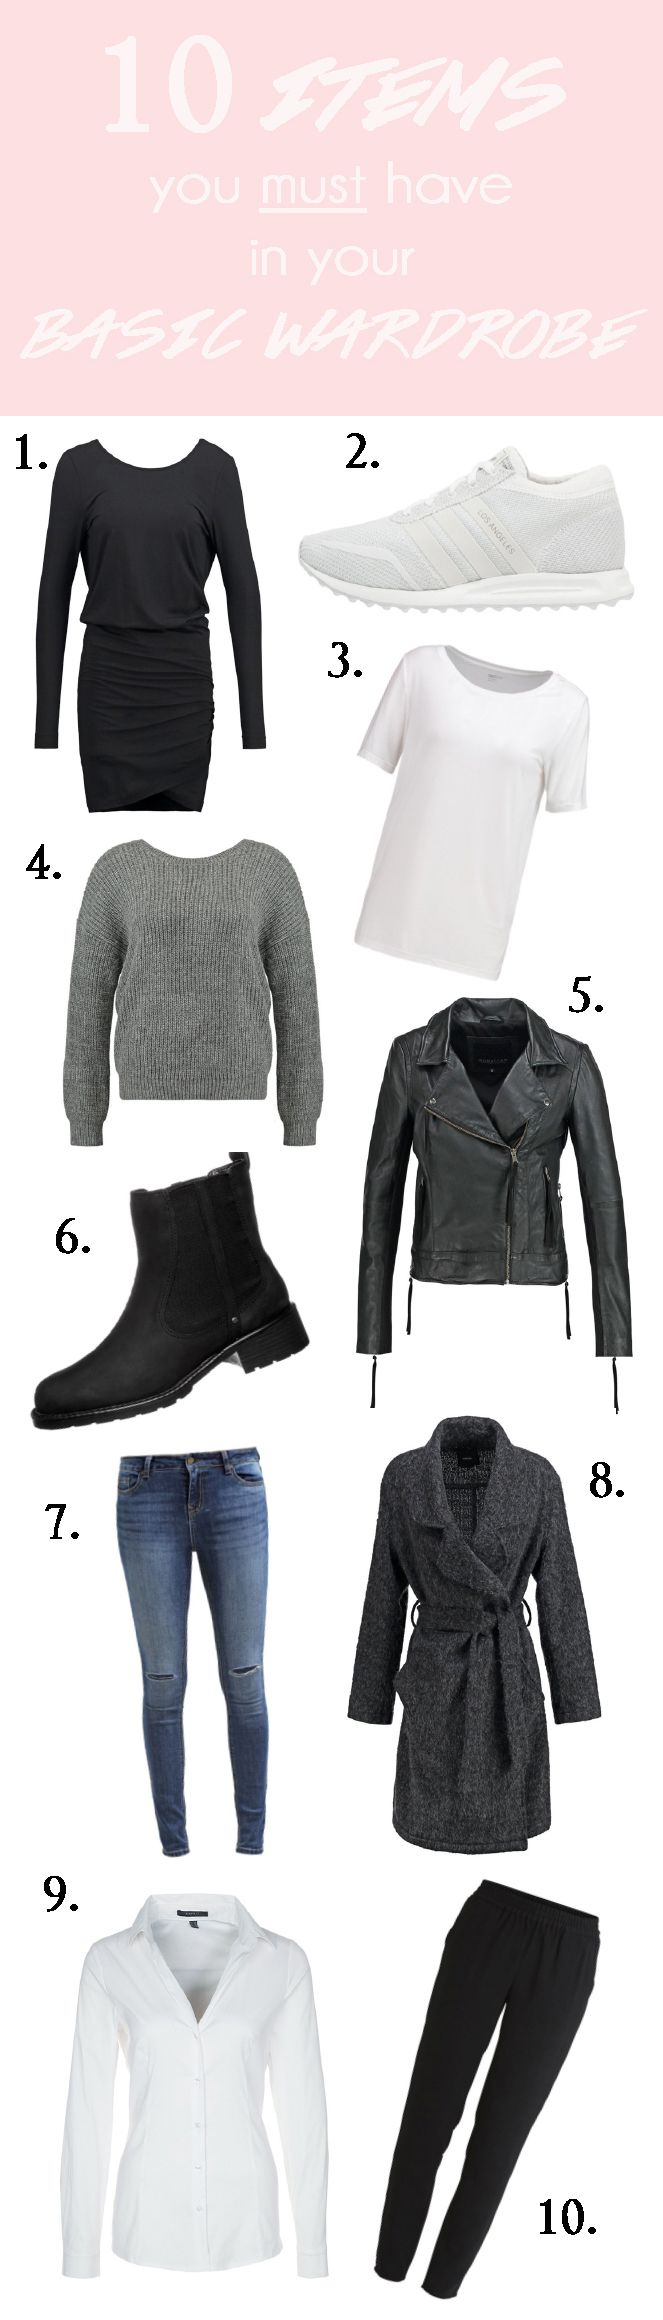 10 must have items for your basic wardrobe, fashion